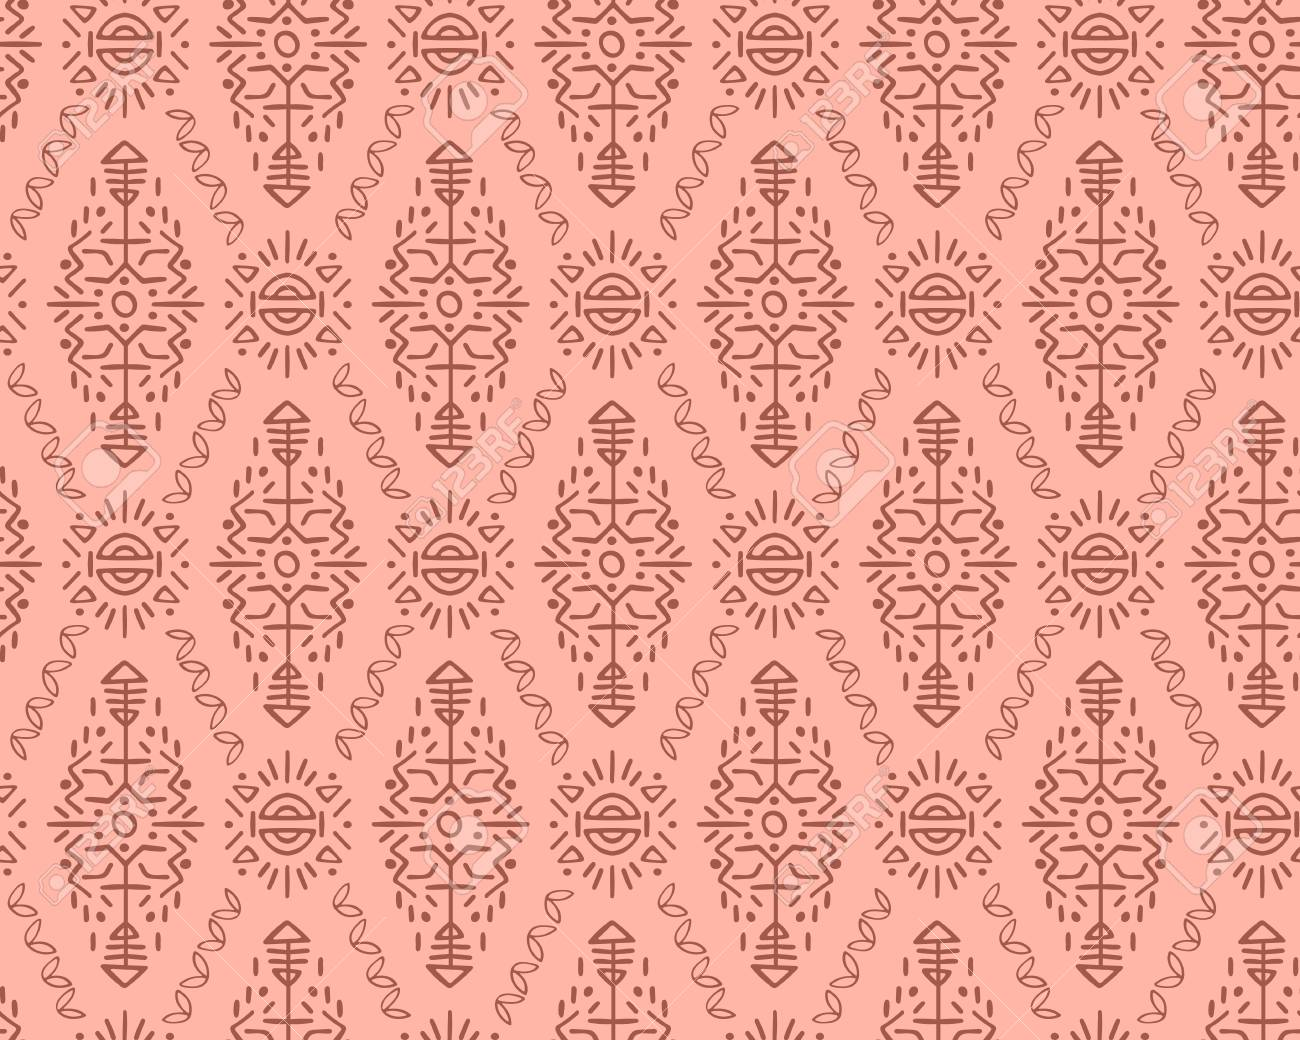 Vector Seamless Pattern in Ethnic Style. Creative tribal endless ornament, perfect for textile design, wrapping paper, wallpaper or site background. Trendy hand drawn boho tile. - 111793989